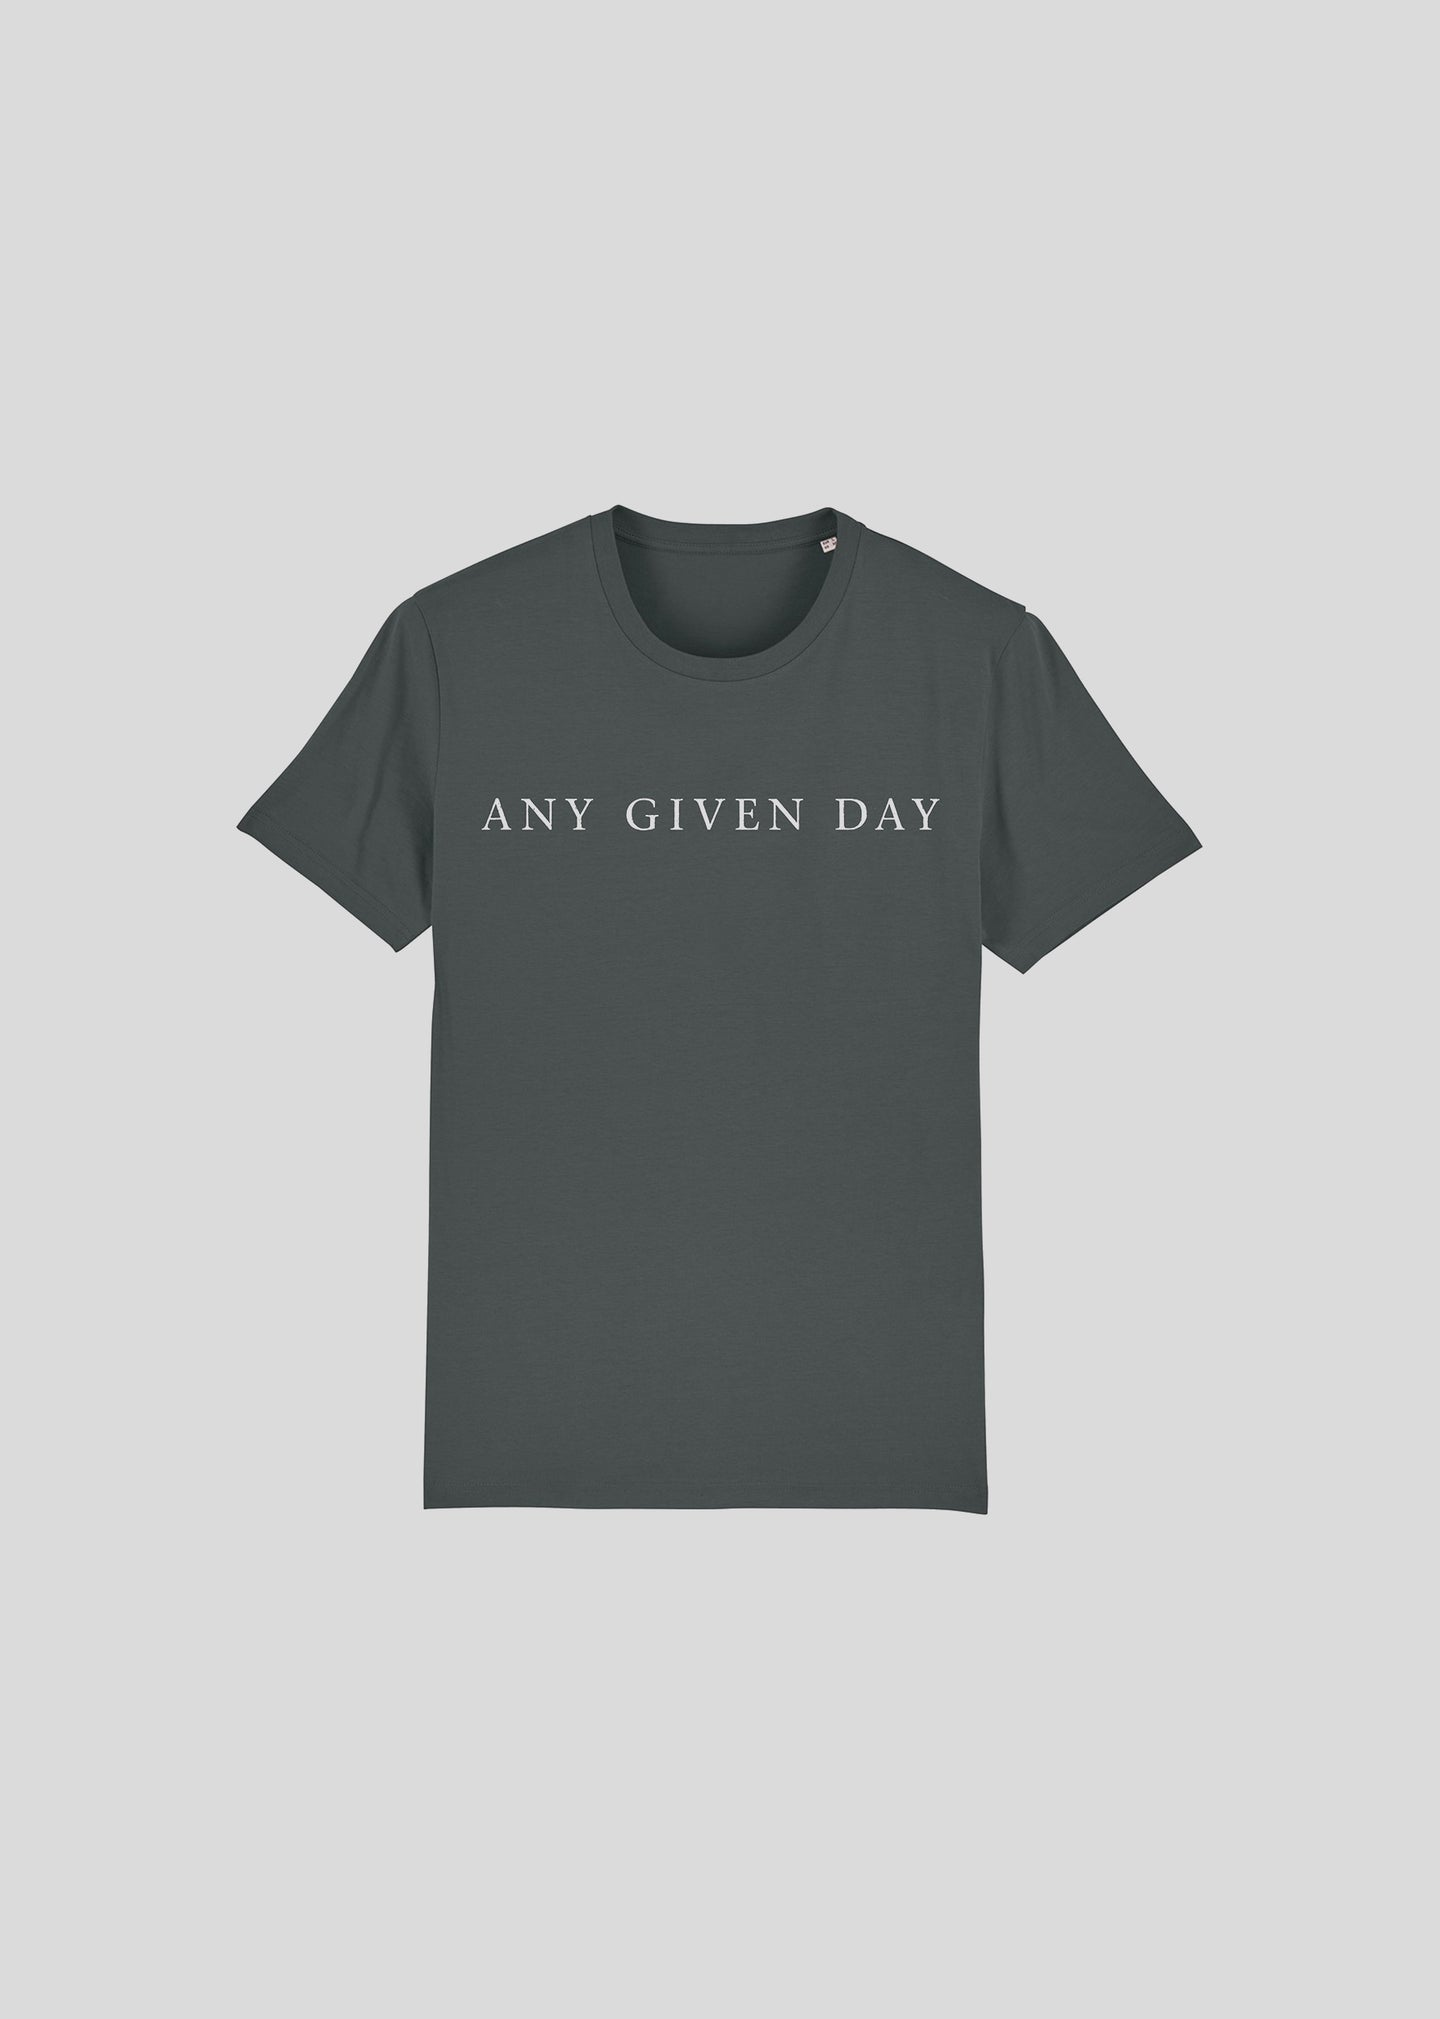 ANY GIVEN DAY - T-SHIRT (Anthracite)